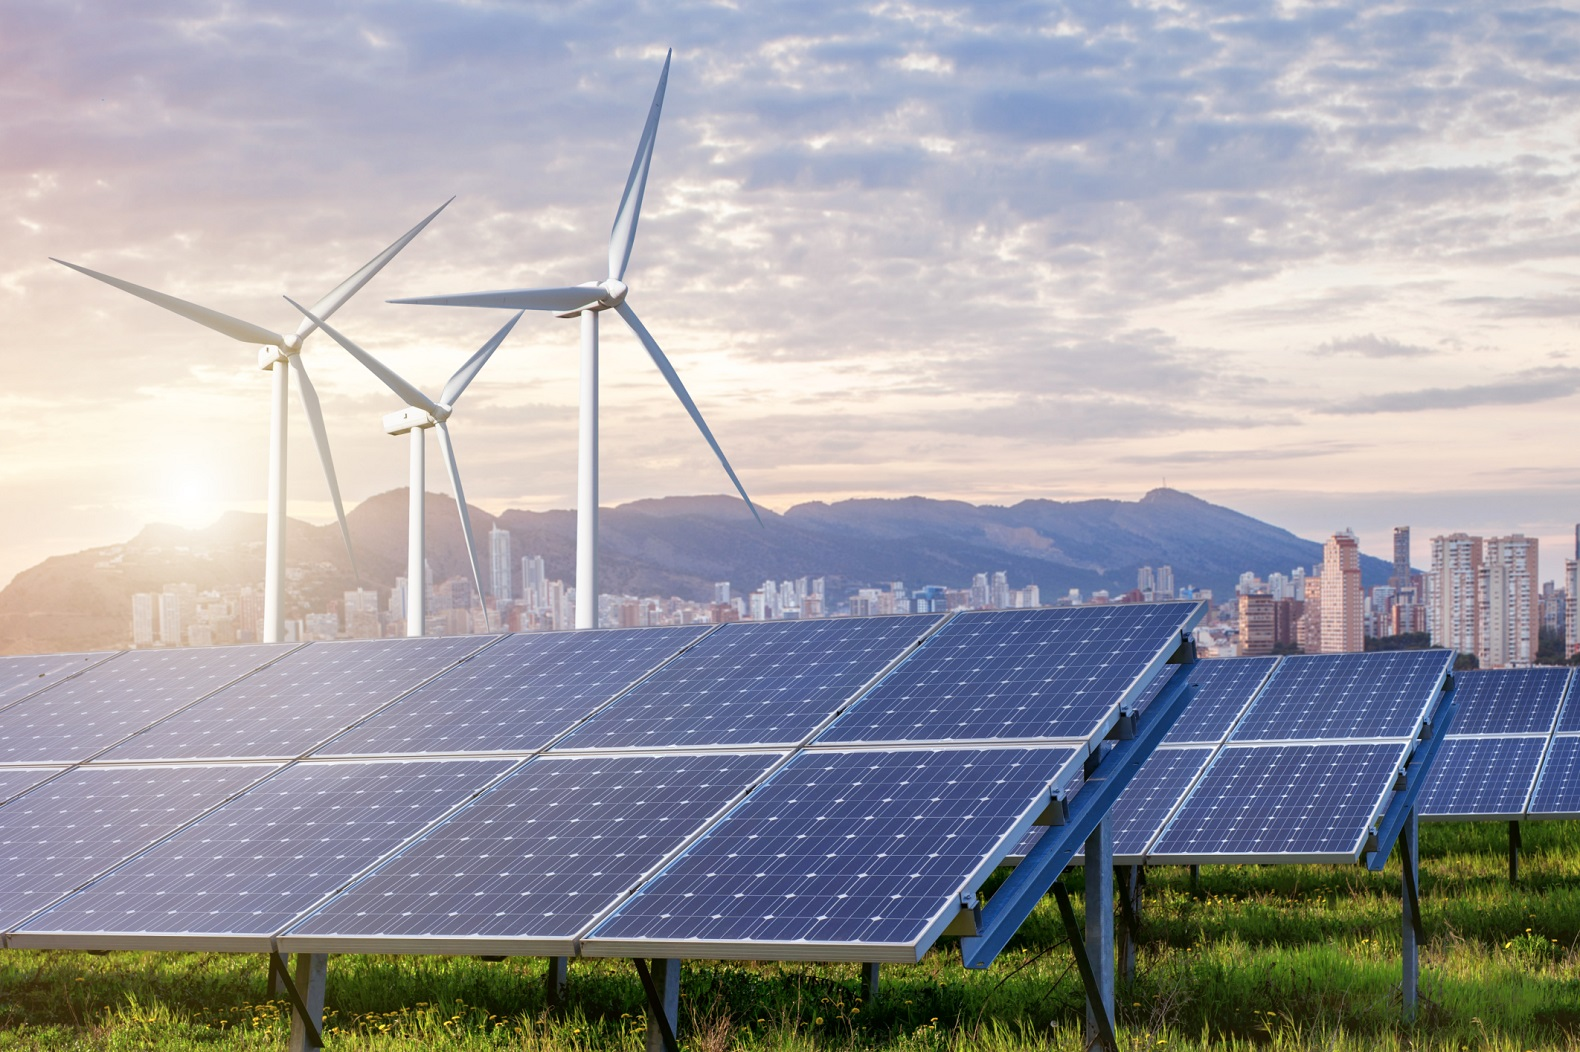 Average cost of solar and wind energy could fall by 59% in the next decade